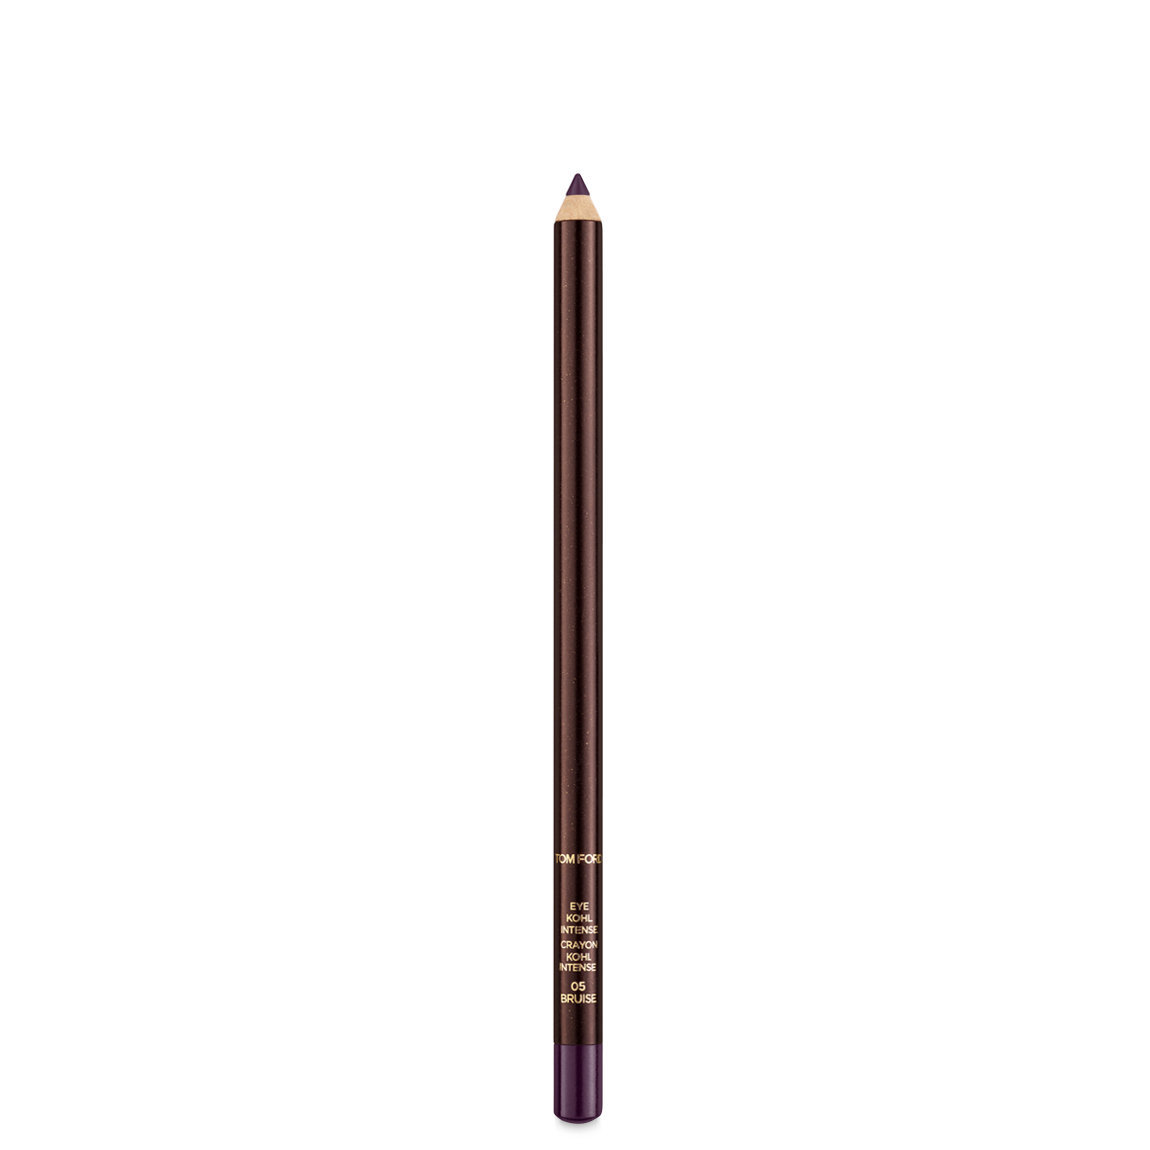 TOM FORD Eye Kohl Intense Bruise alternative view 1.